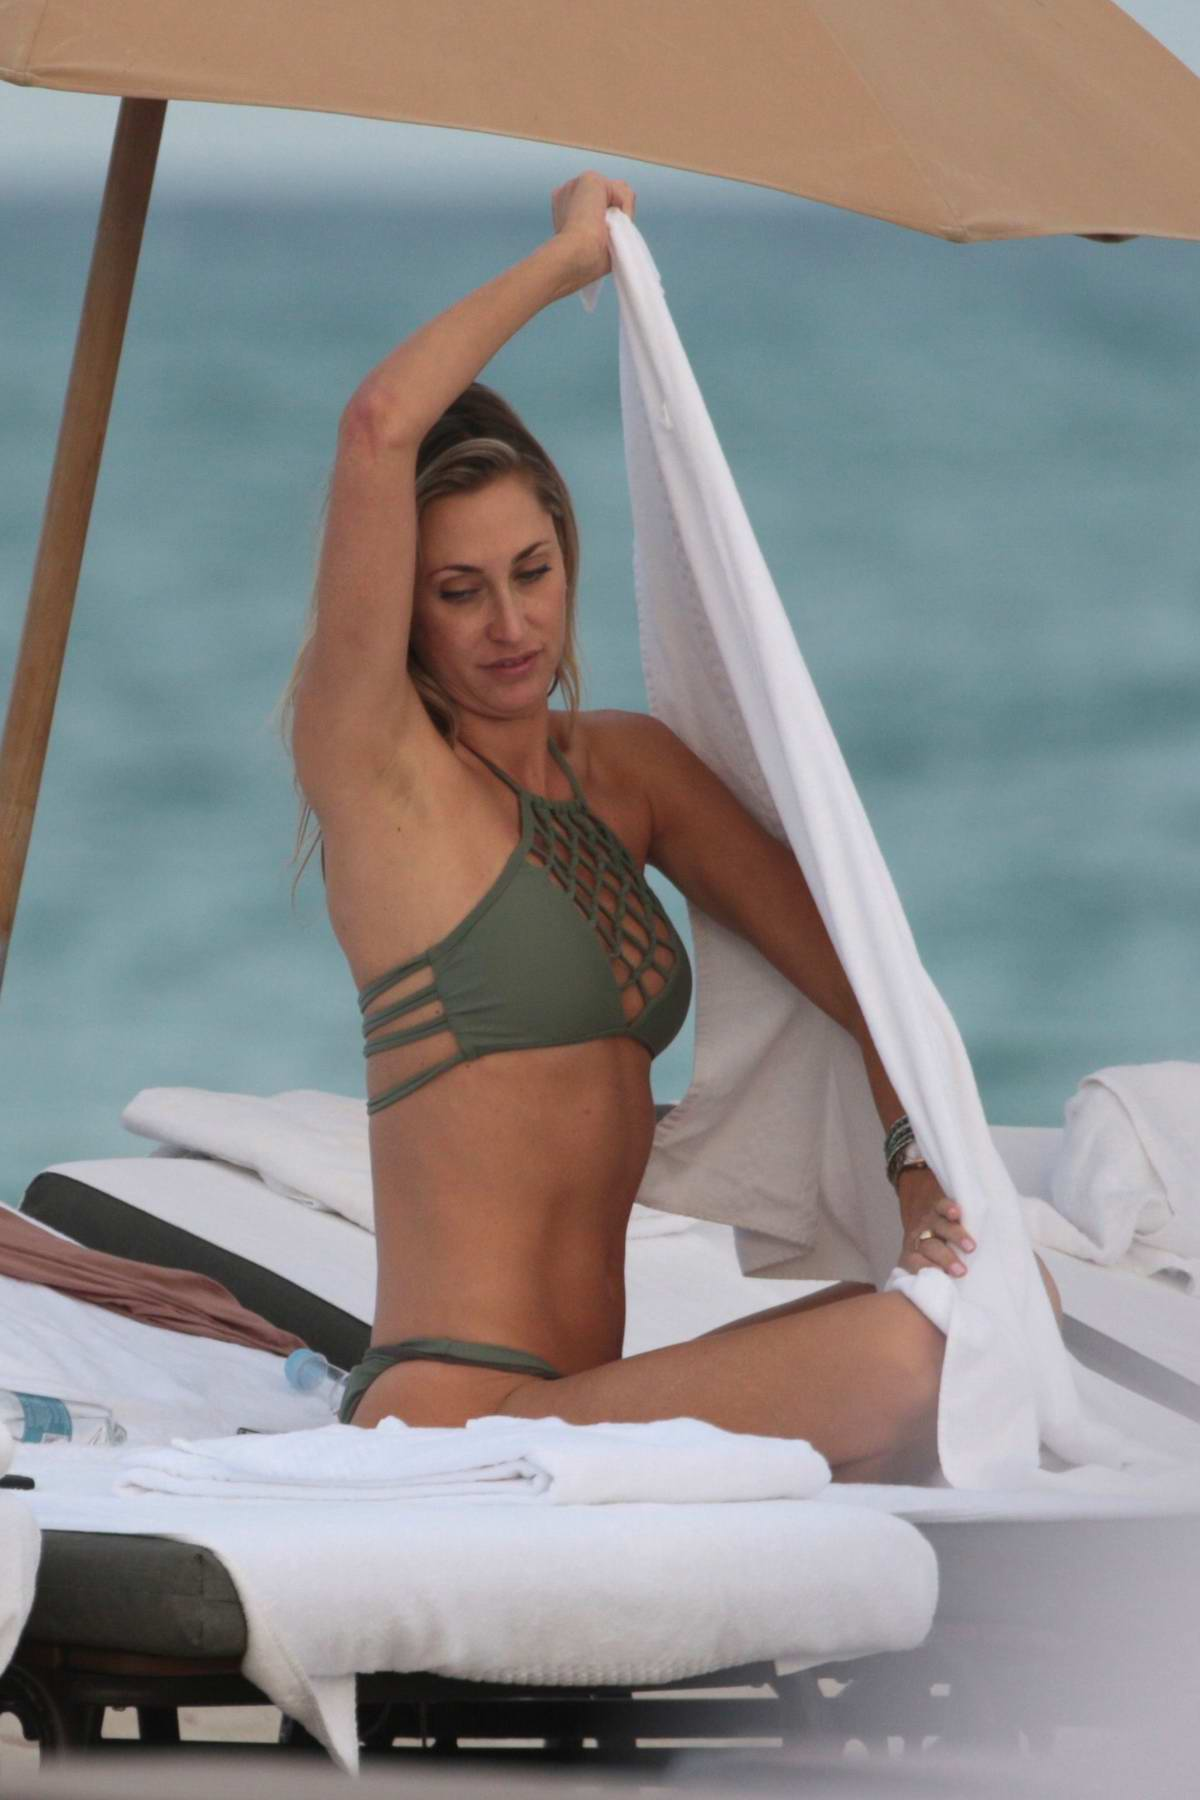 Lauren Stoner in an olive green bikini at the beach in Miami, Florida